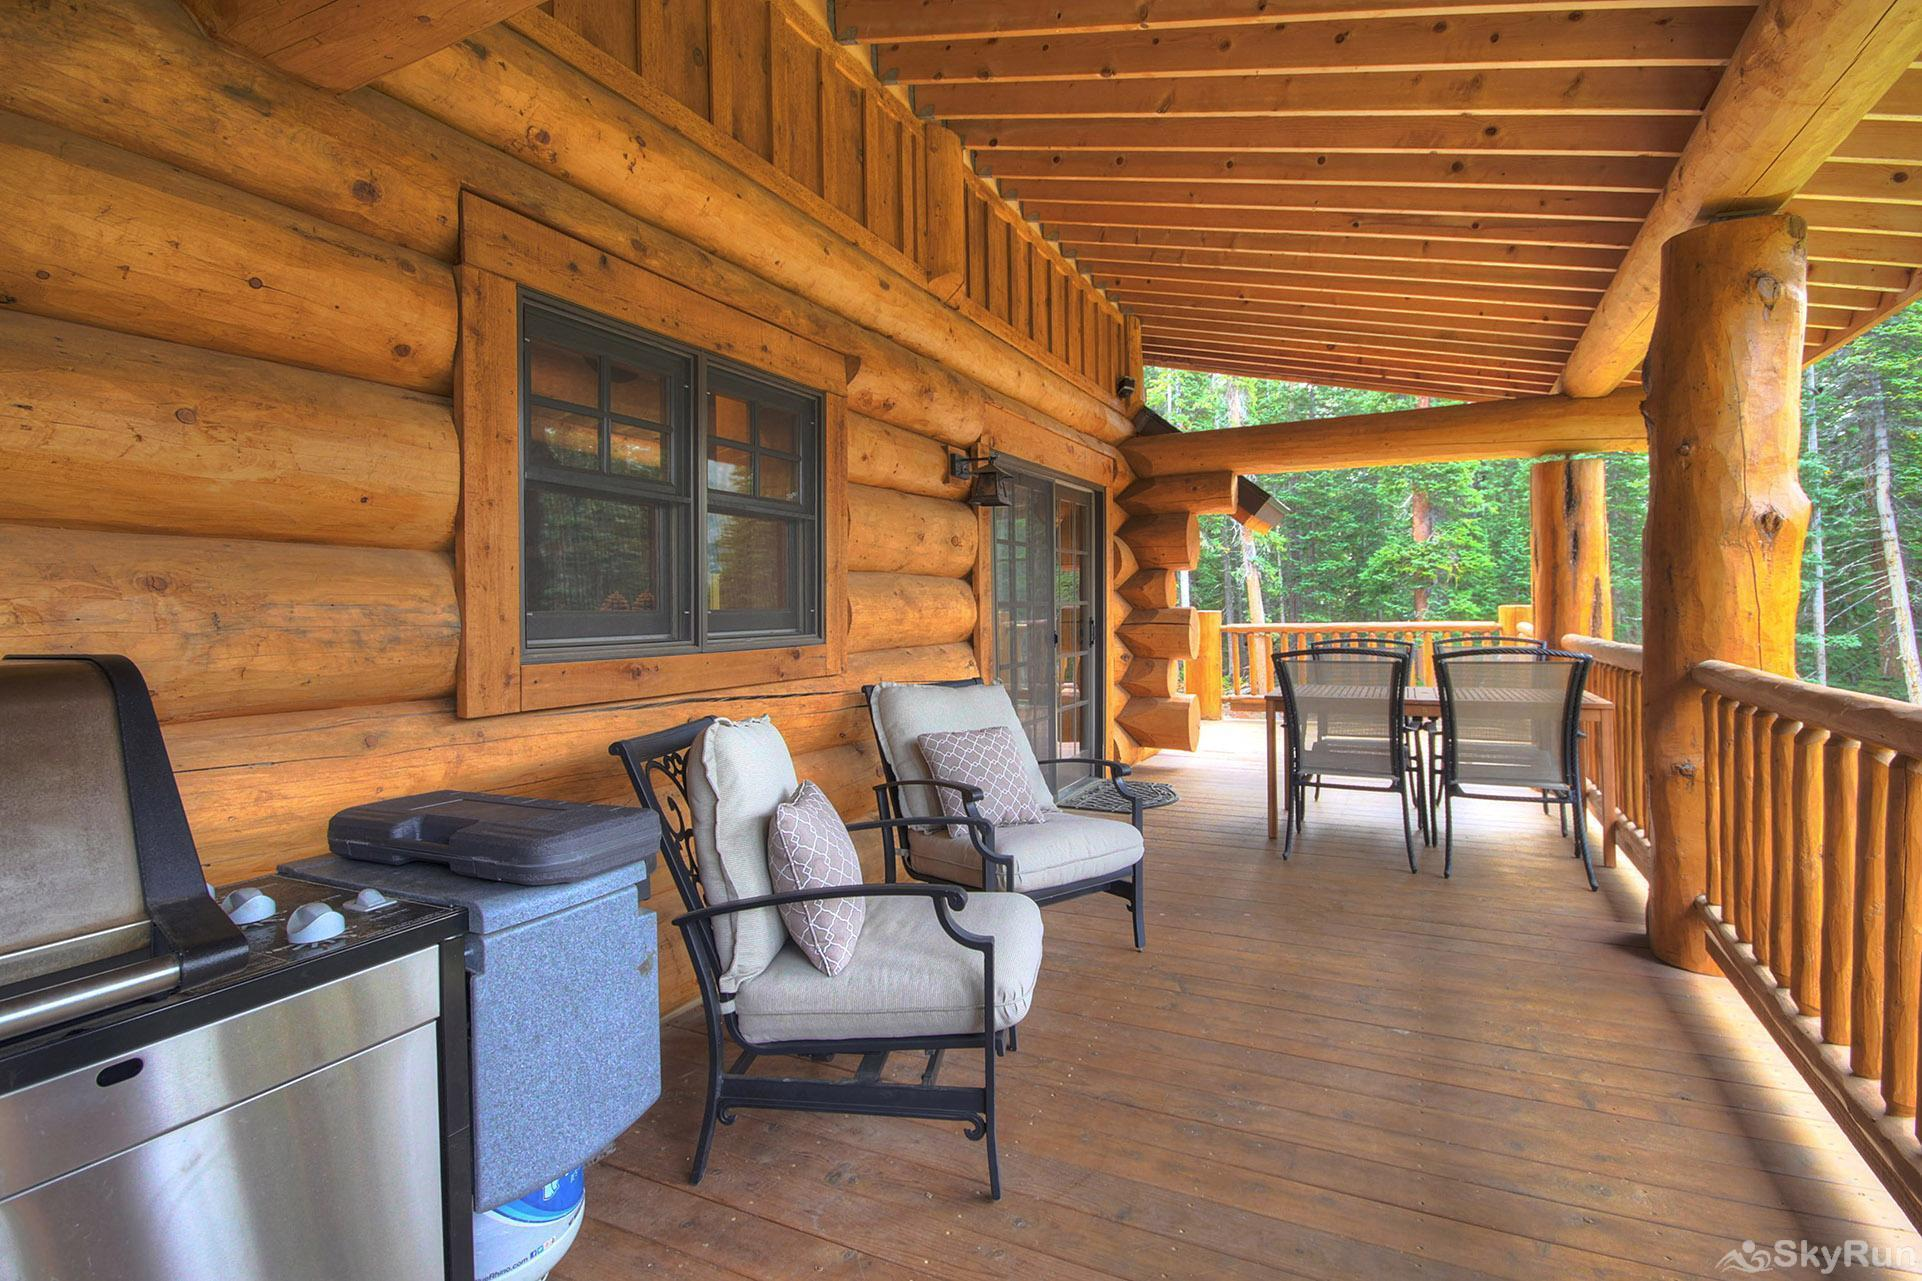 Timber Ridge Lodge Outdoor patio with BBQ grill